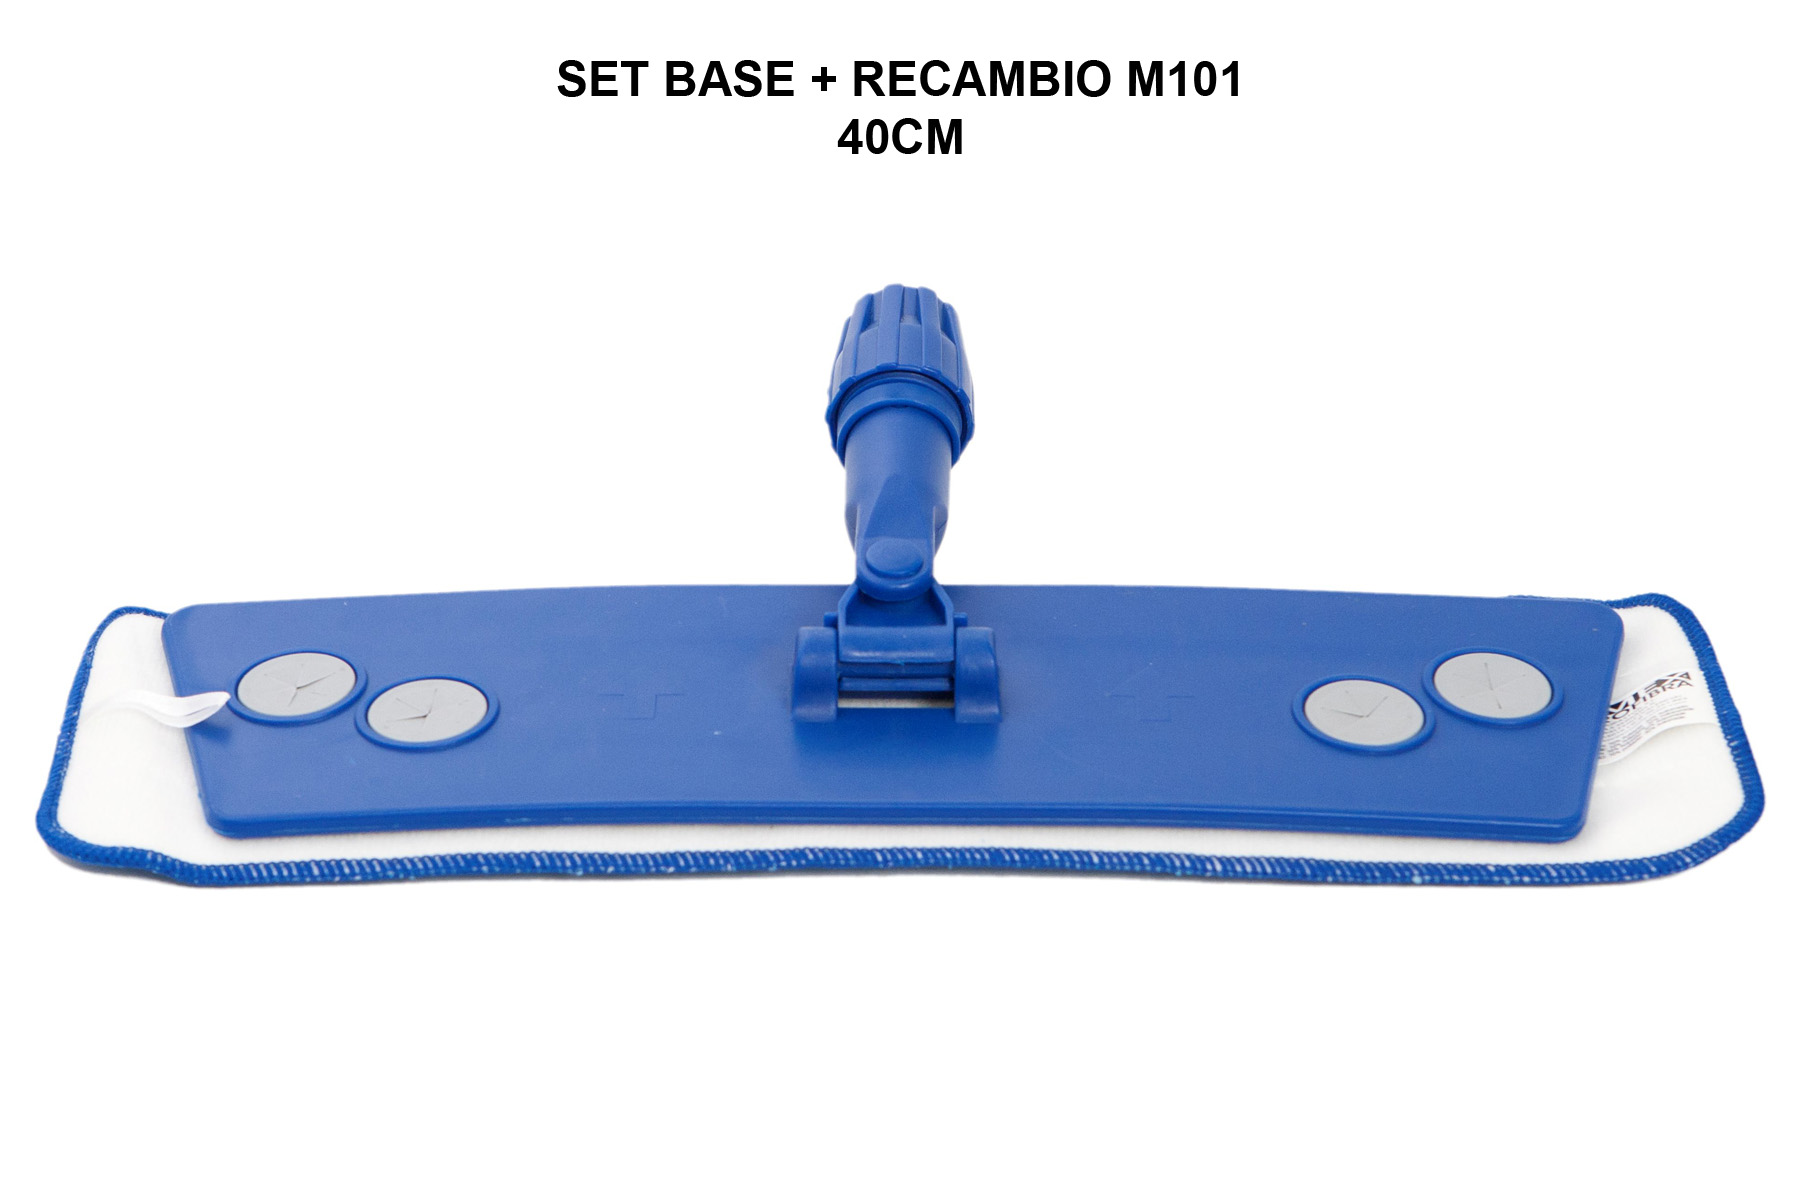 SET BASE + RECAMBIO M101 40CM